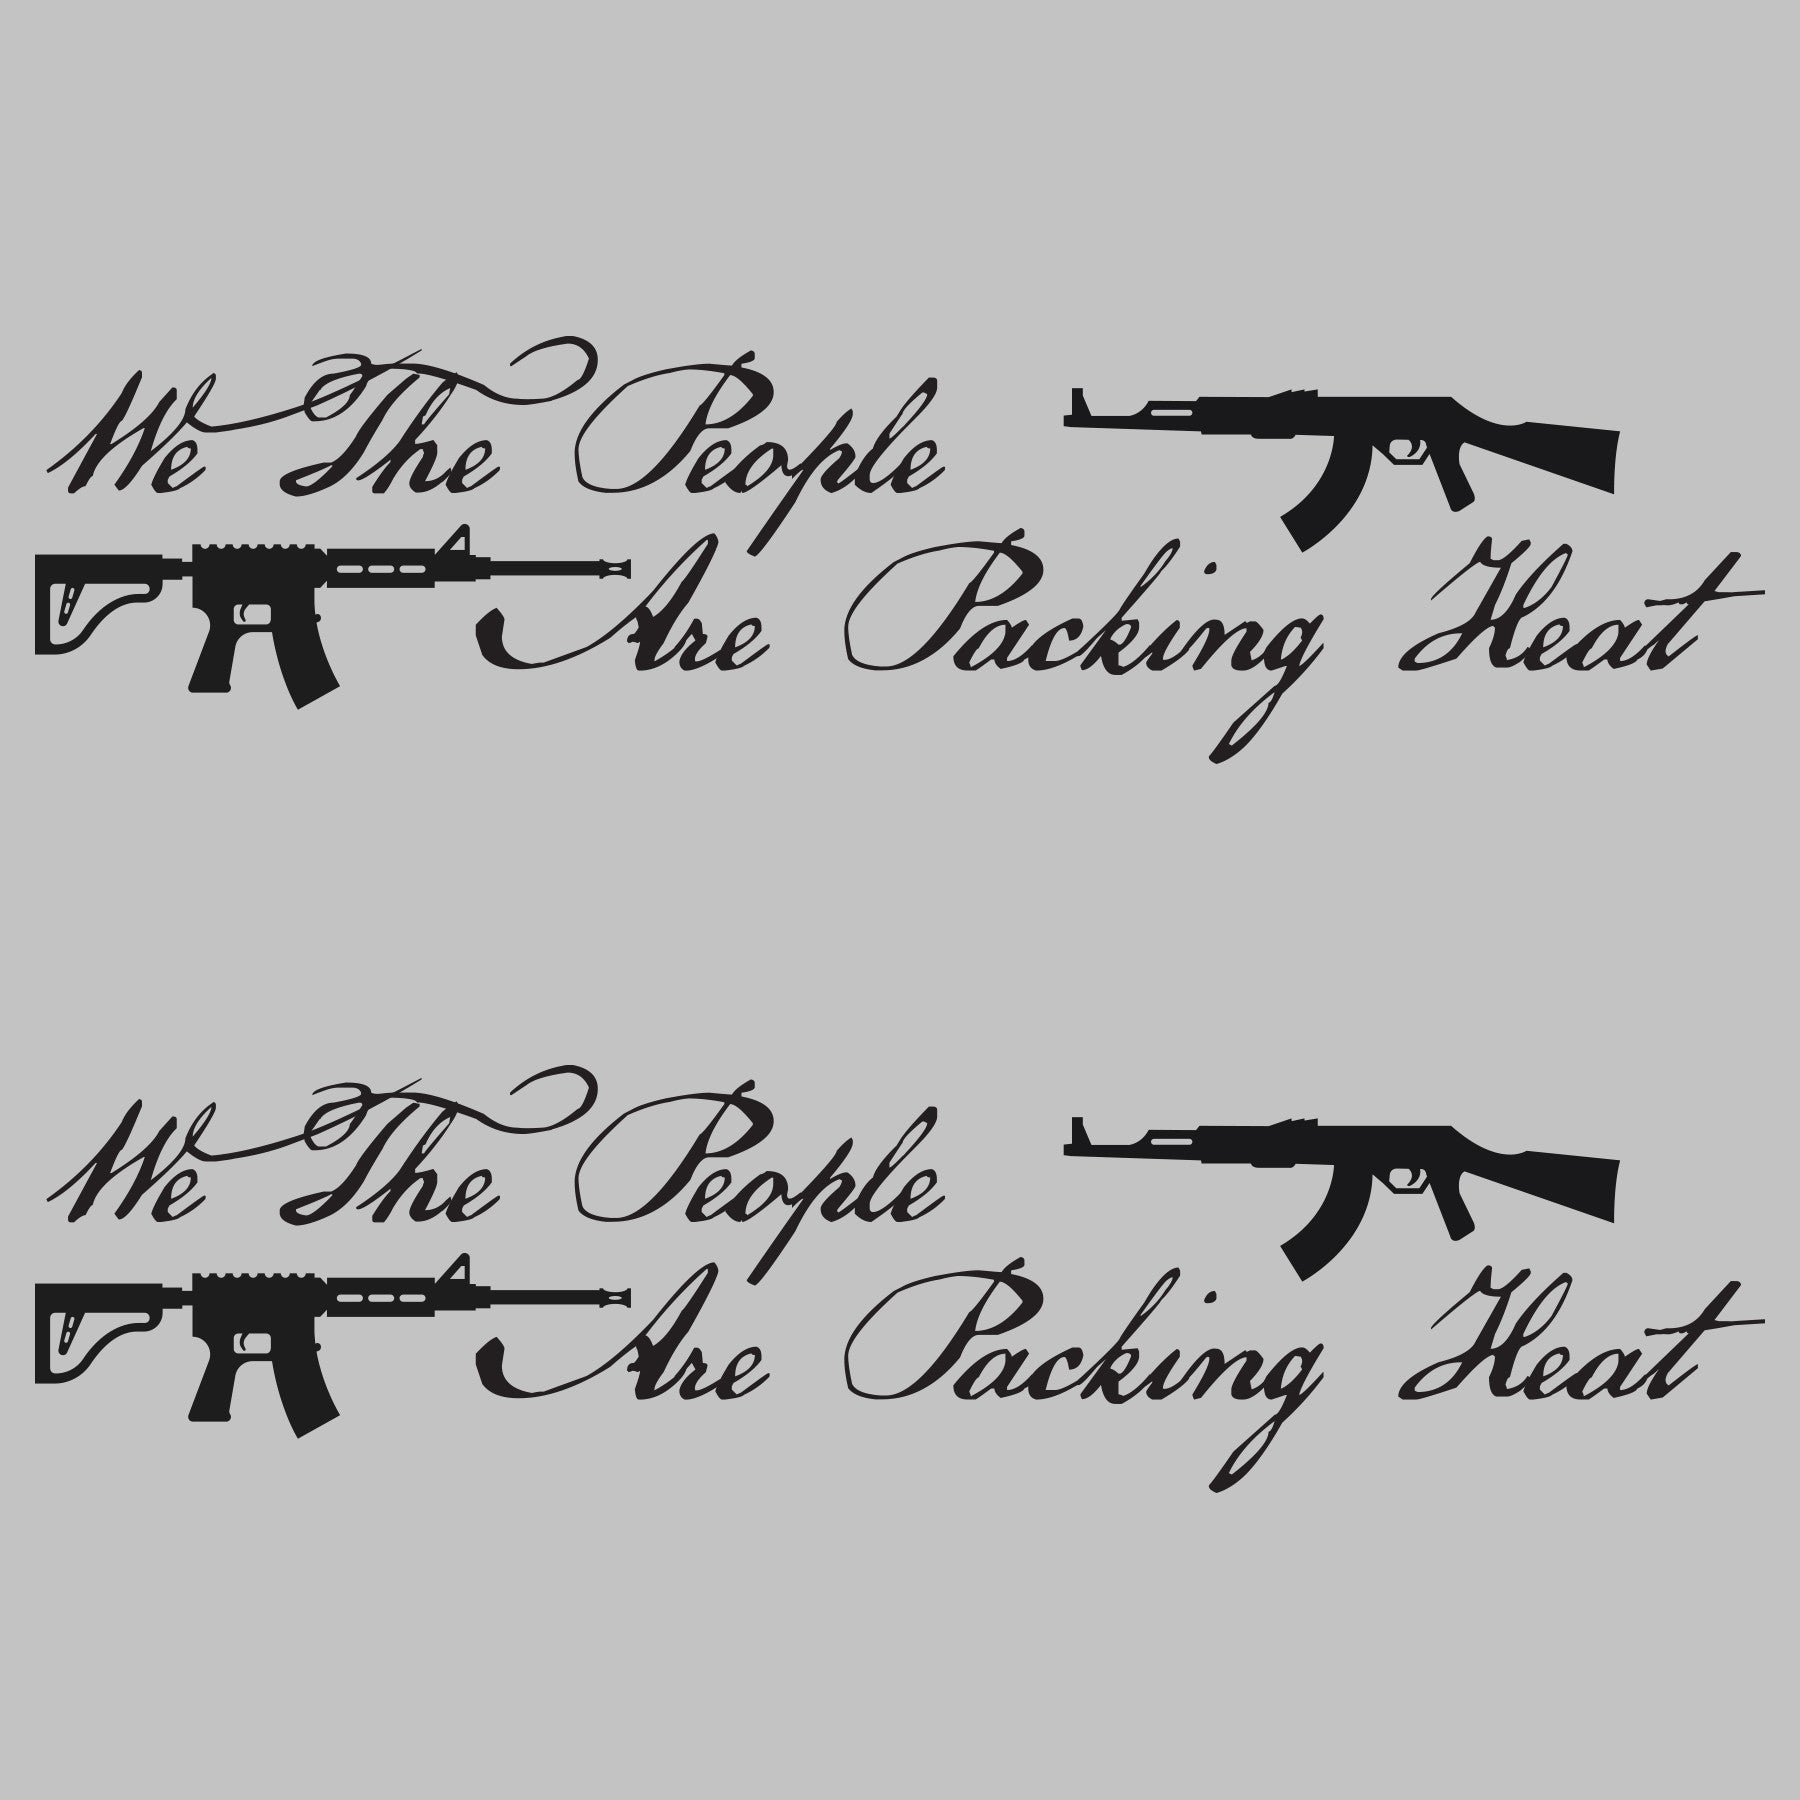 We The People two pack